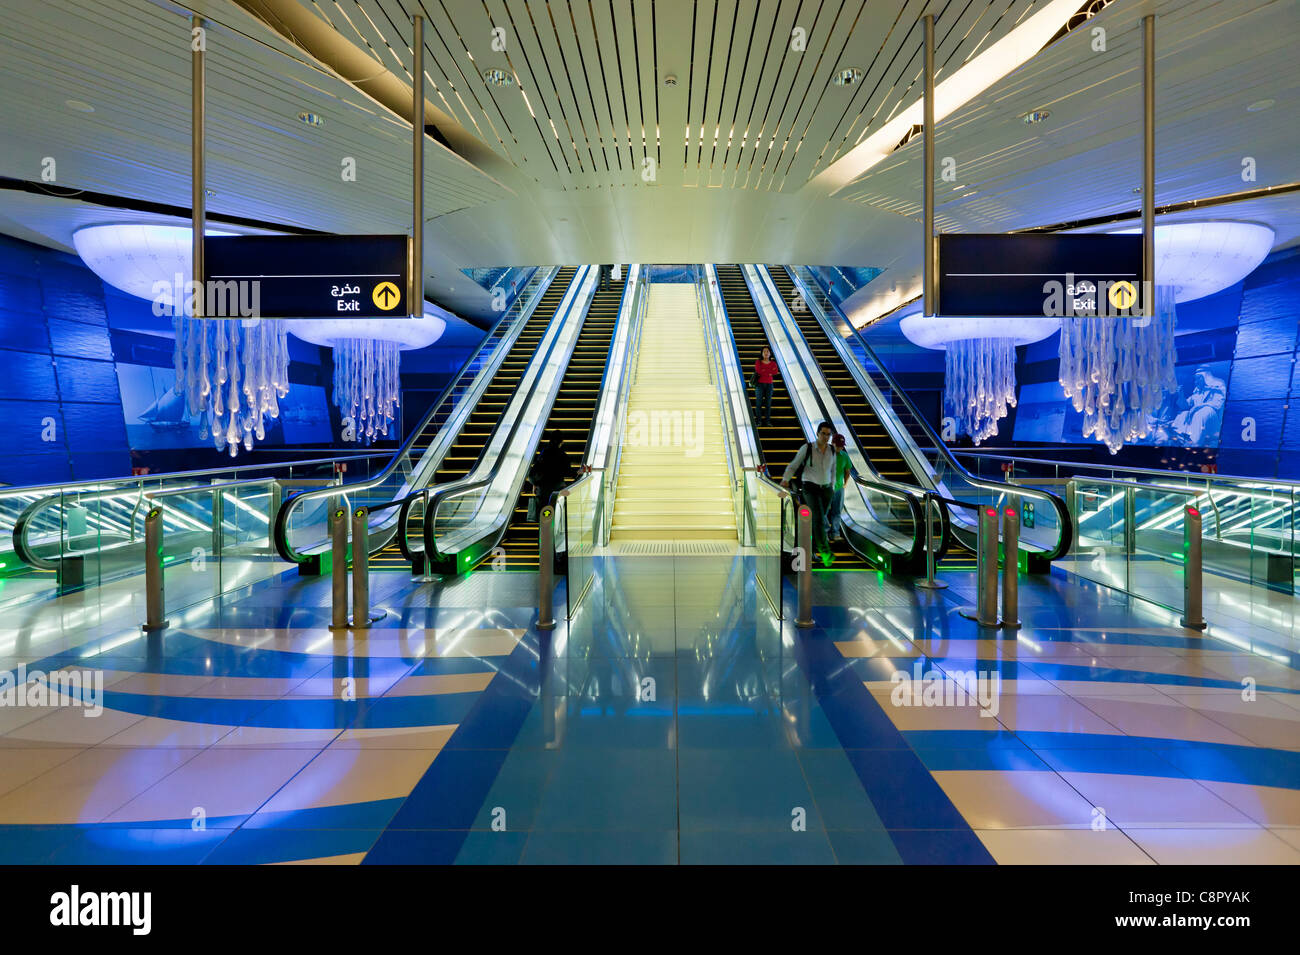 Underground escalators Metro Station Interior, Dubai, United Arab Emirates, UAE, Middle East - Stock Image